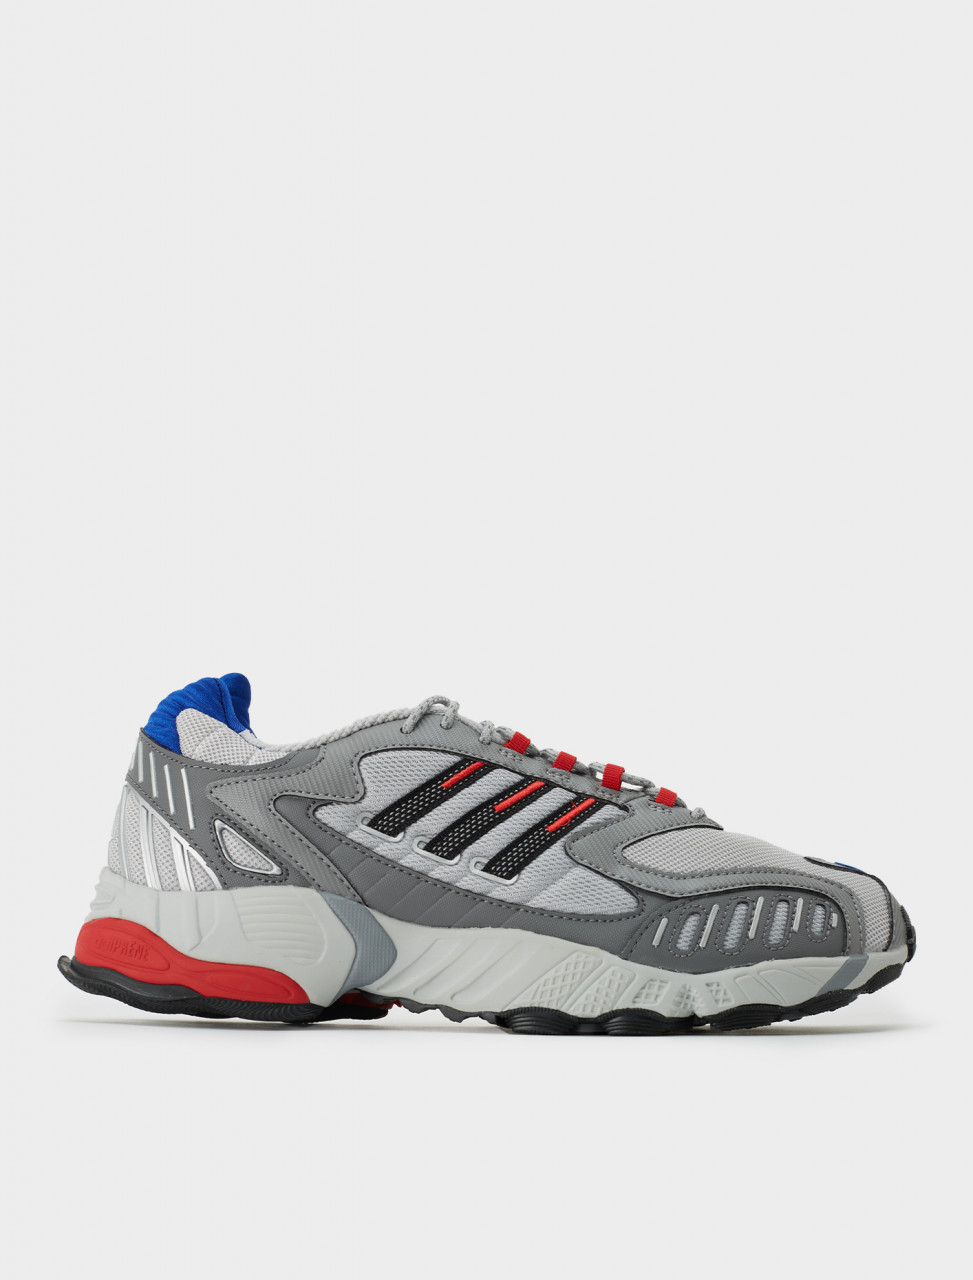 Adidas Torsion TRDC Sneaker in Red, Blue and Grey